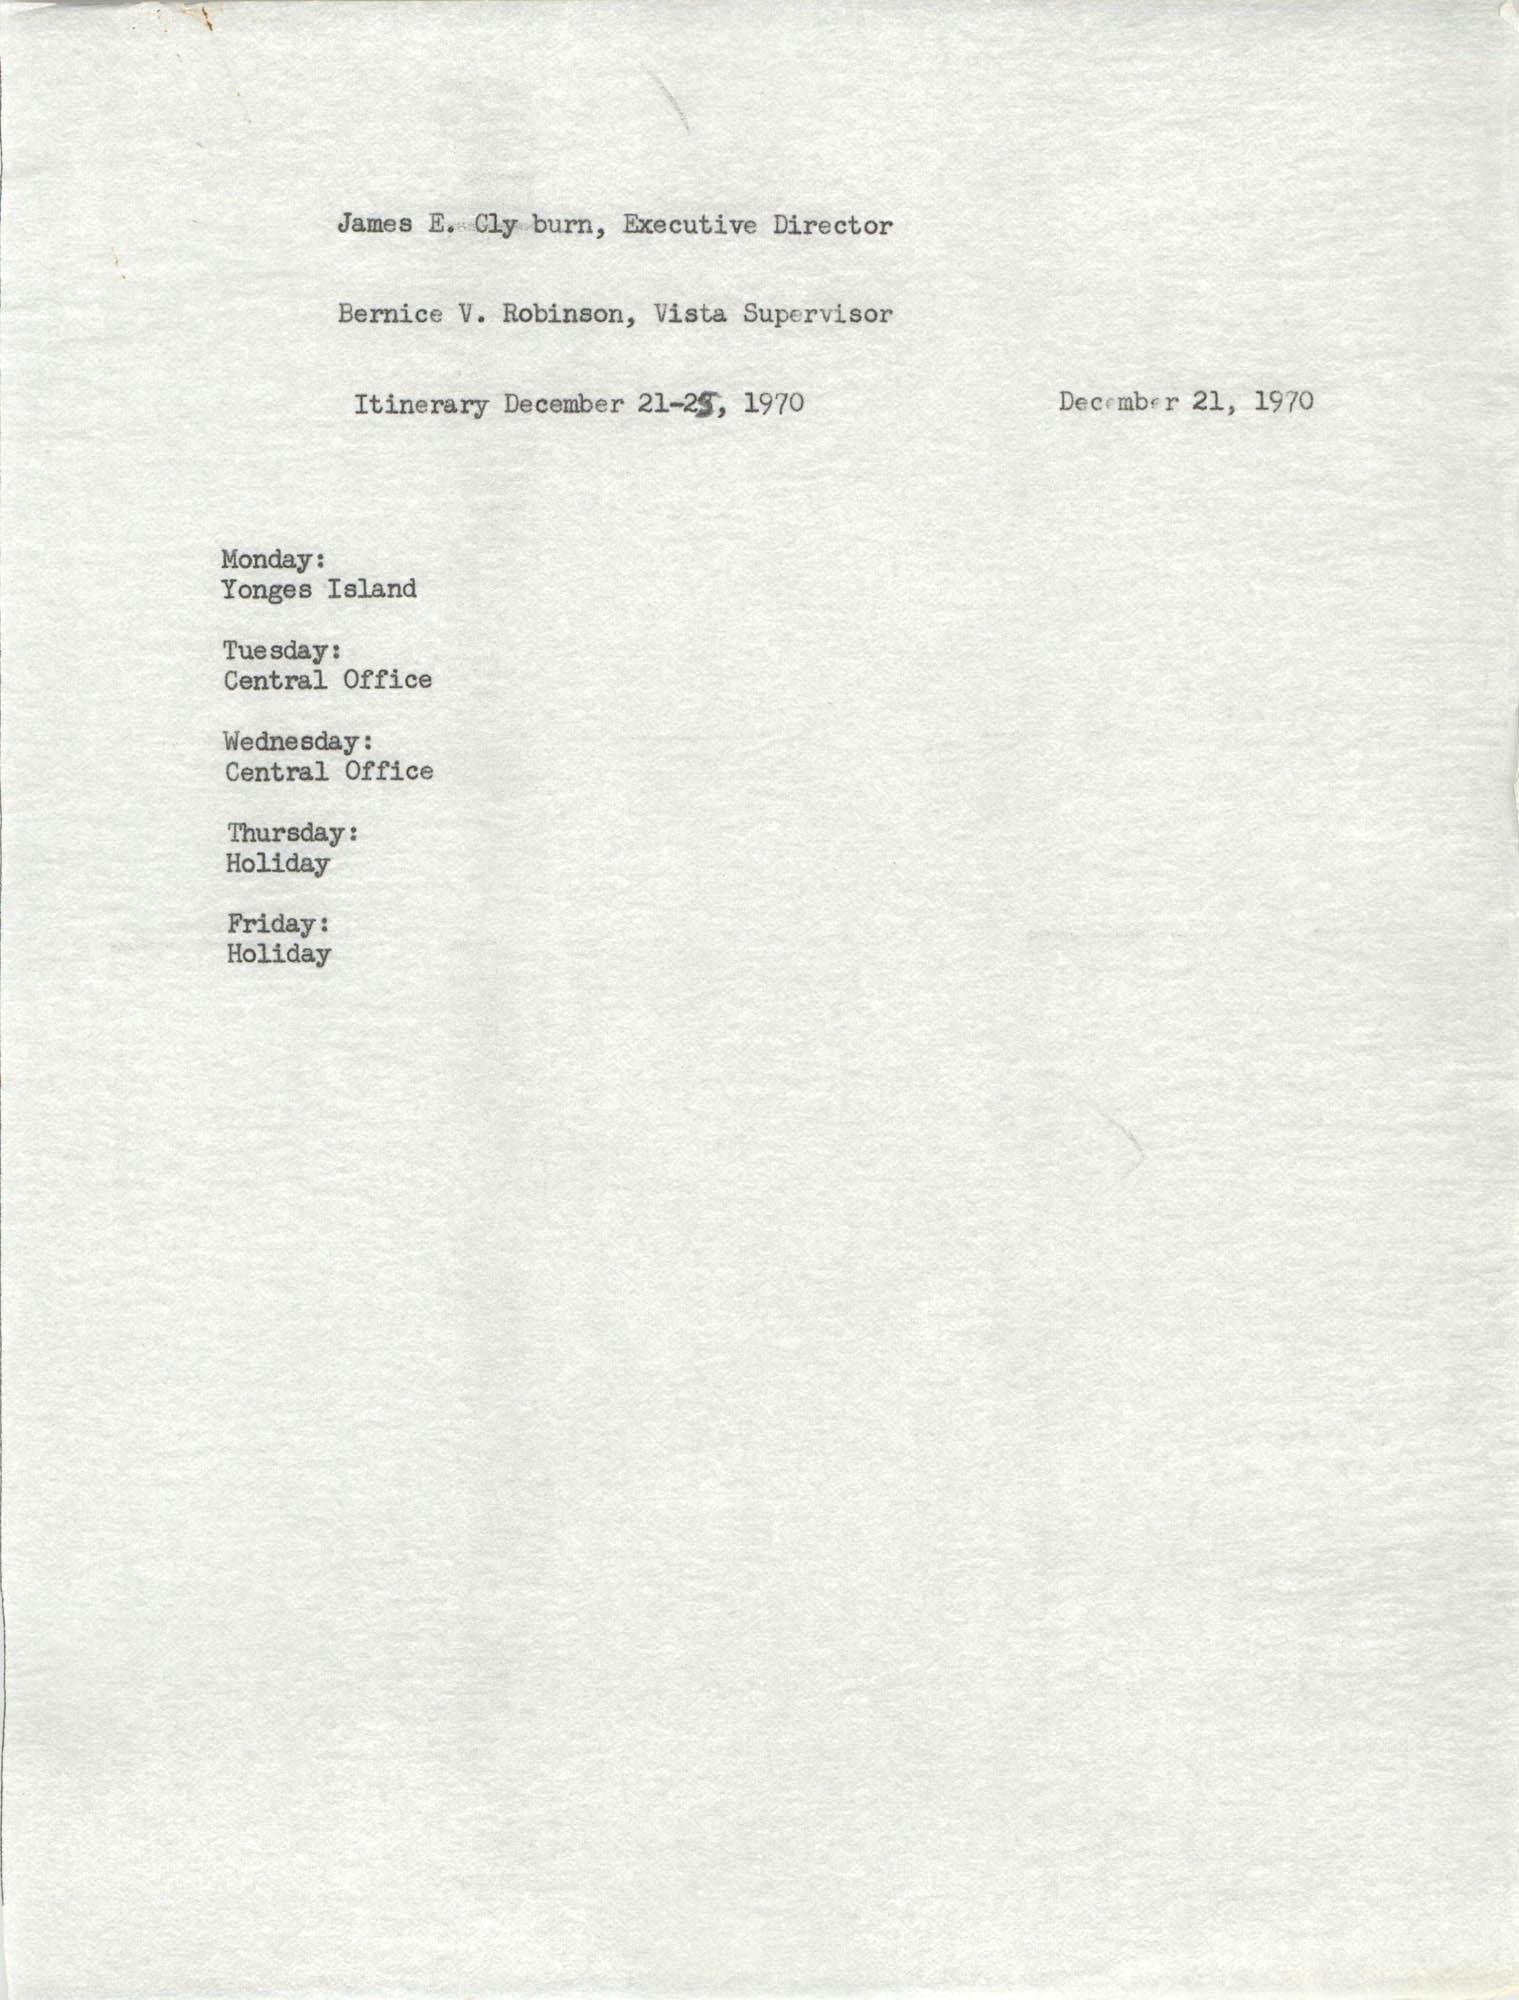 VISTA Itinerary, December 21-25, 1970